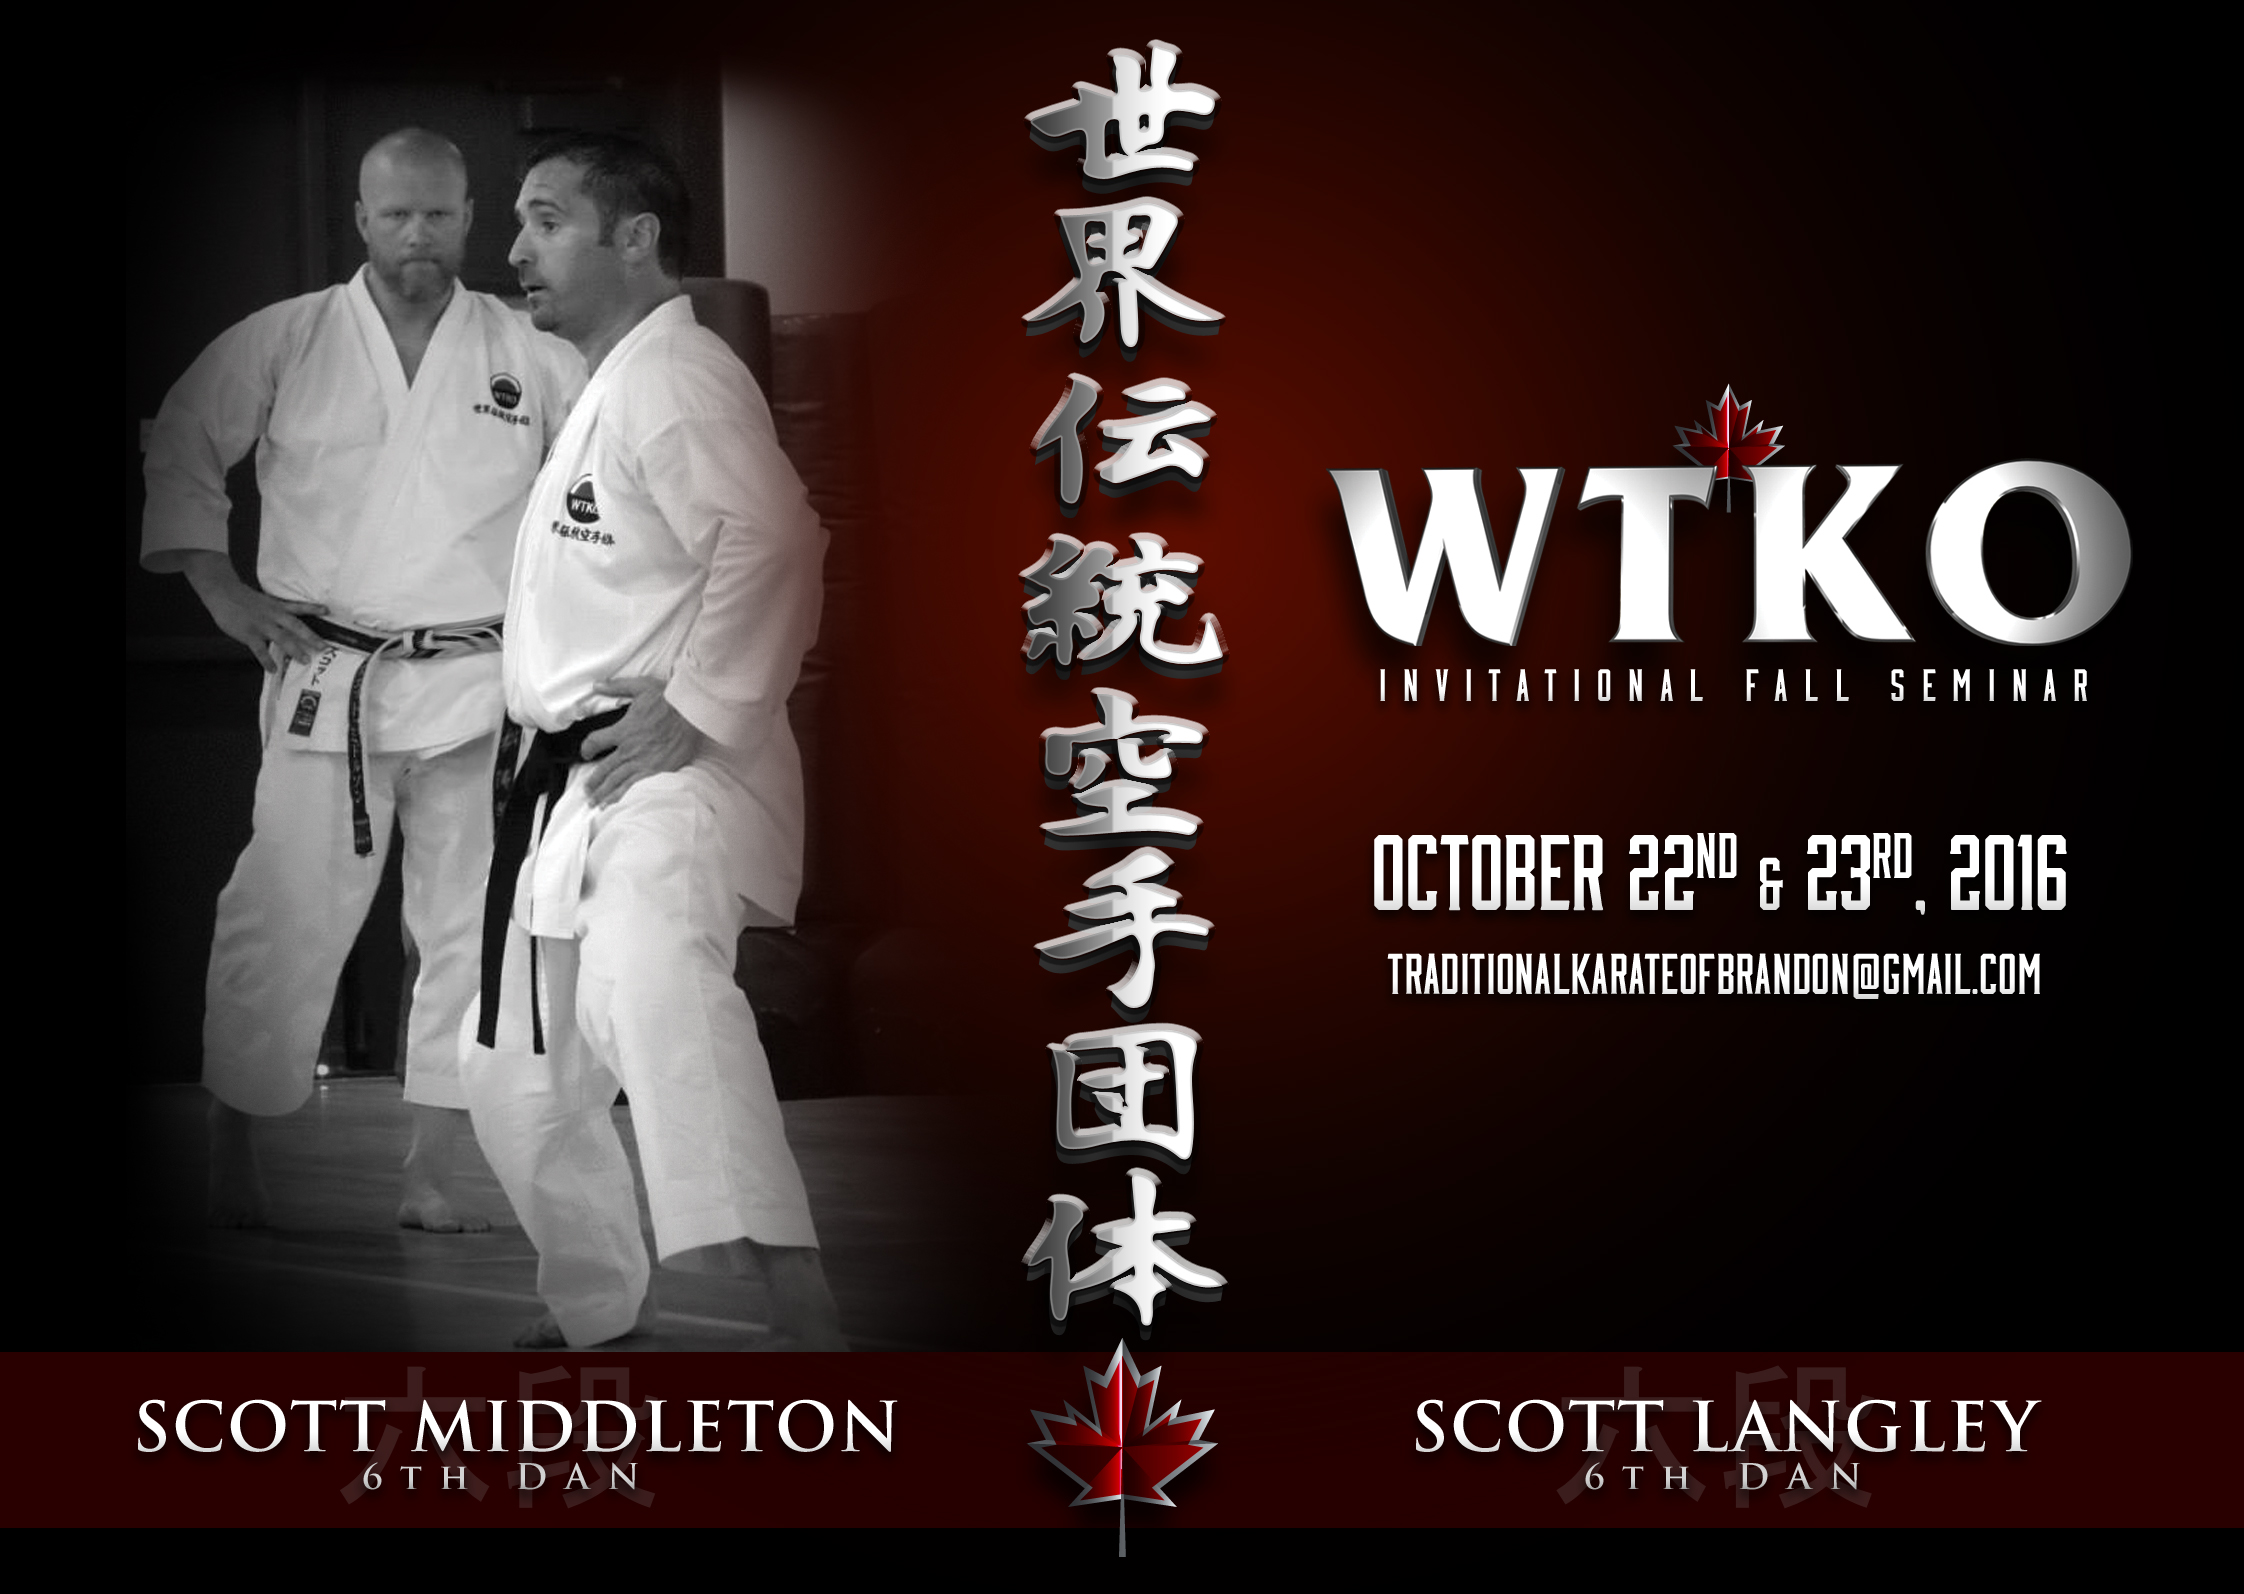 2016 WTKO Canada Invitational Fall Seminar